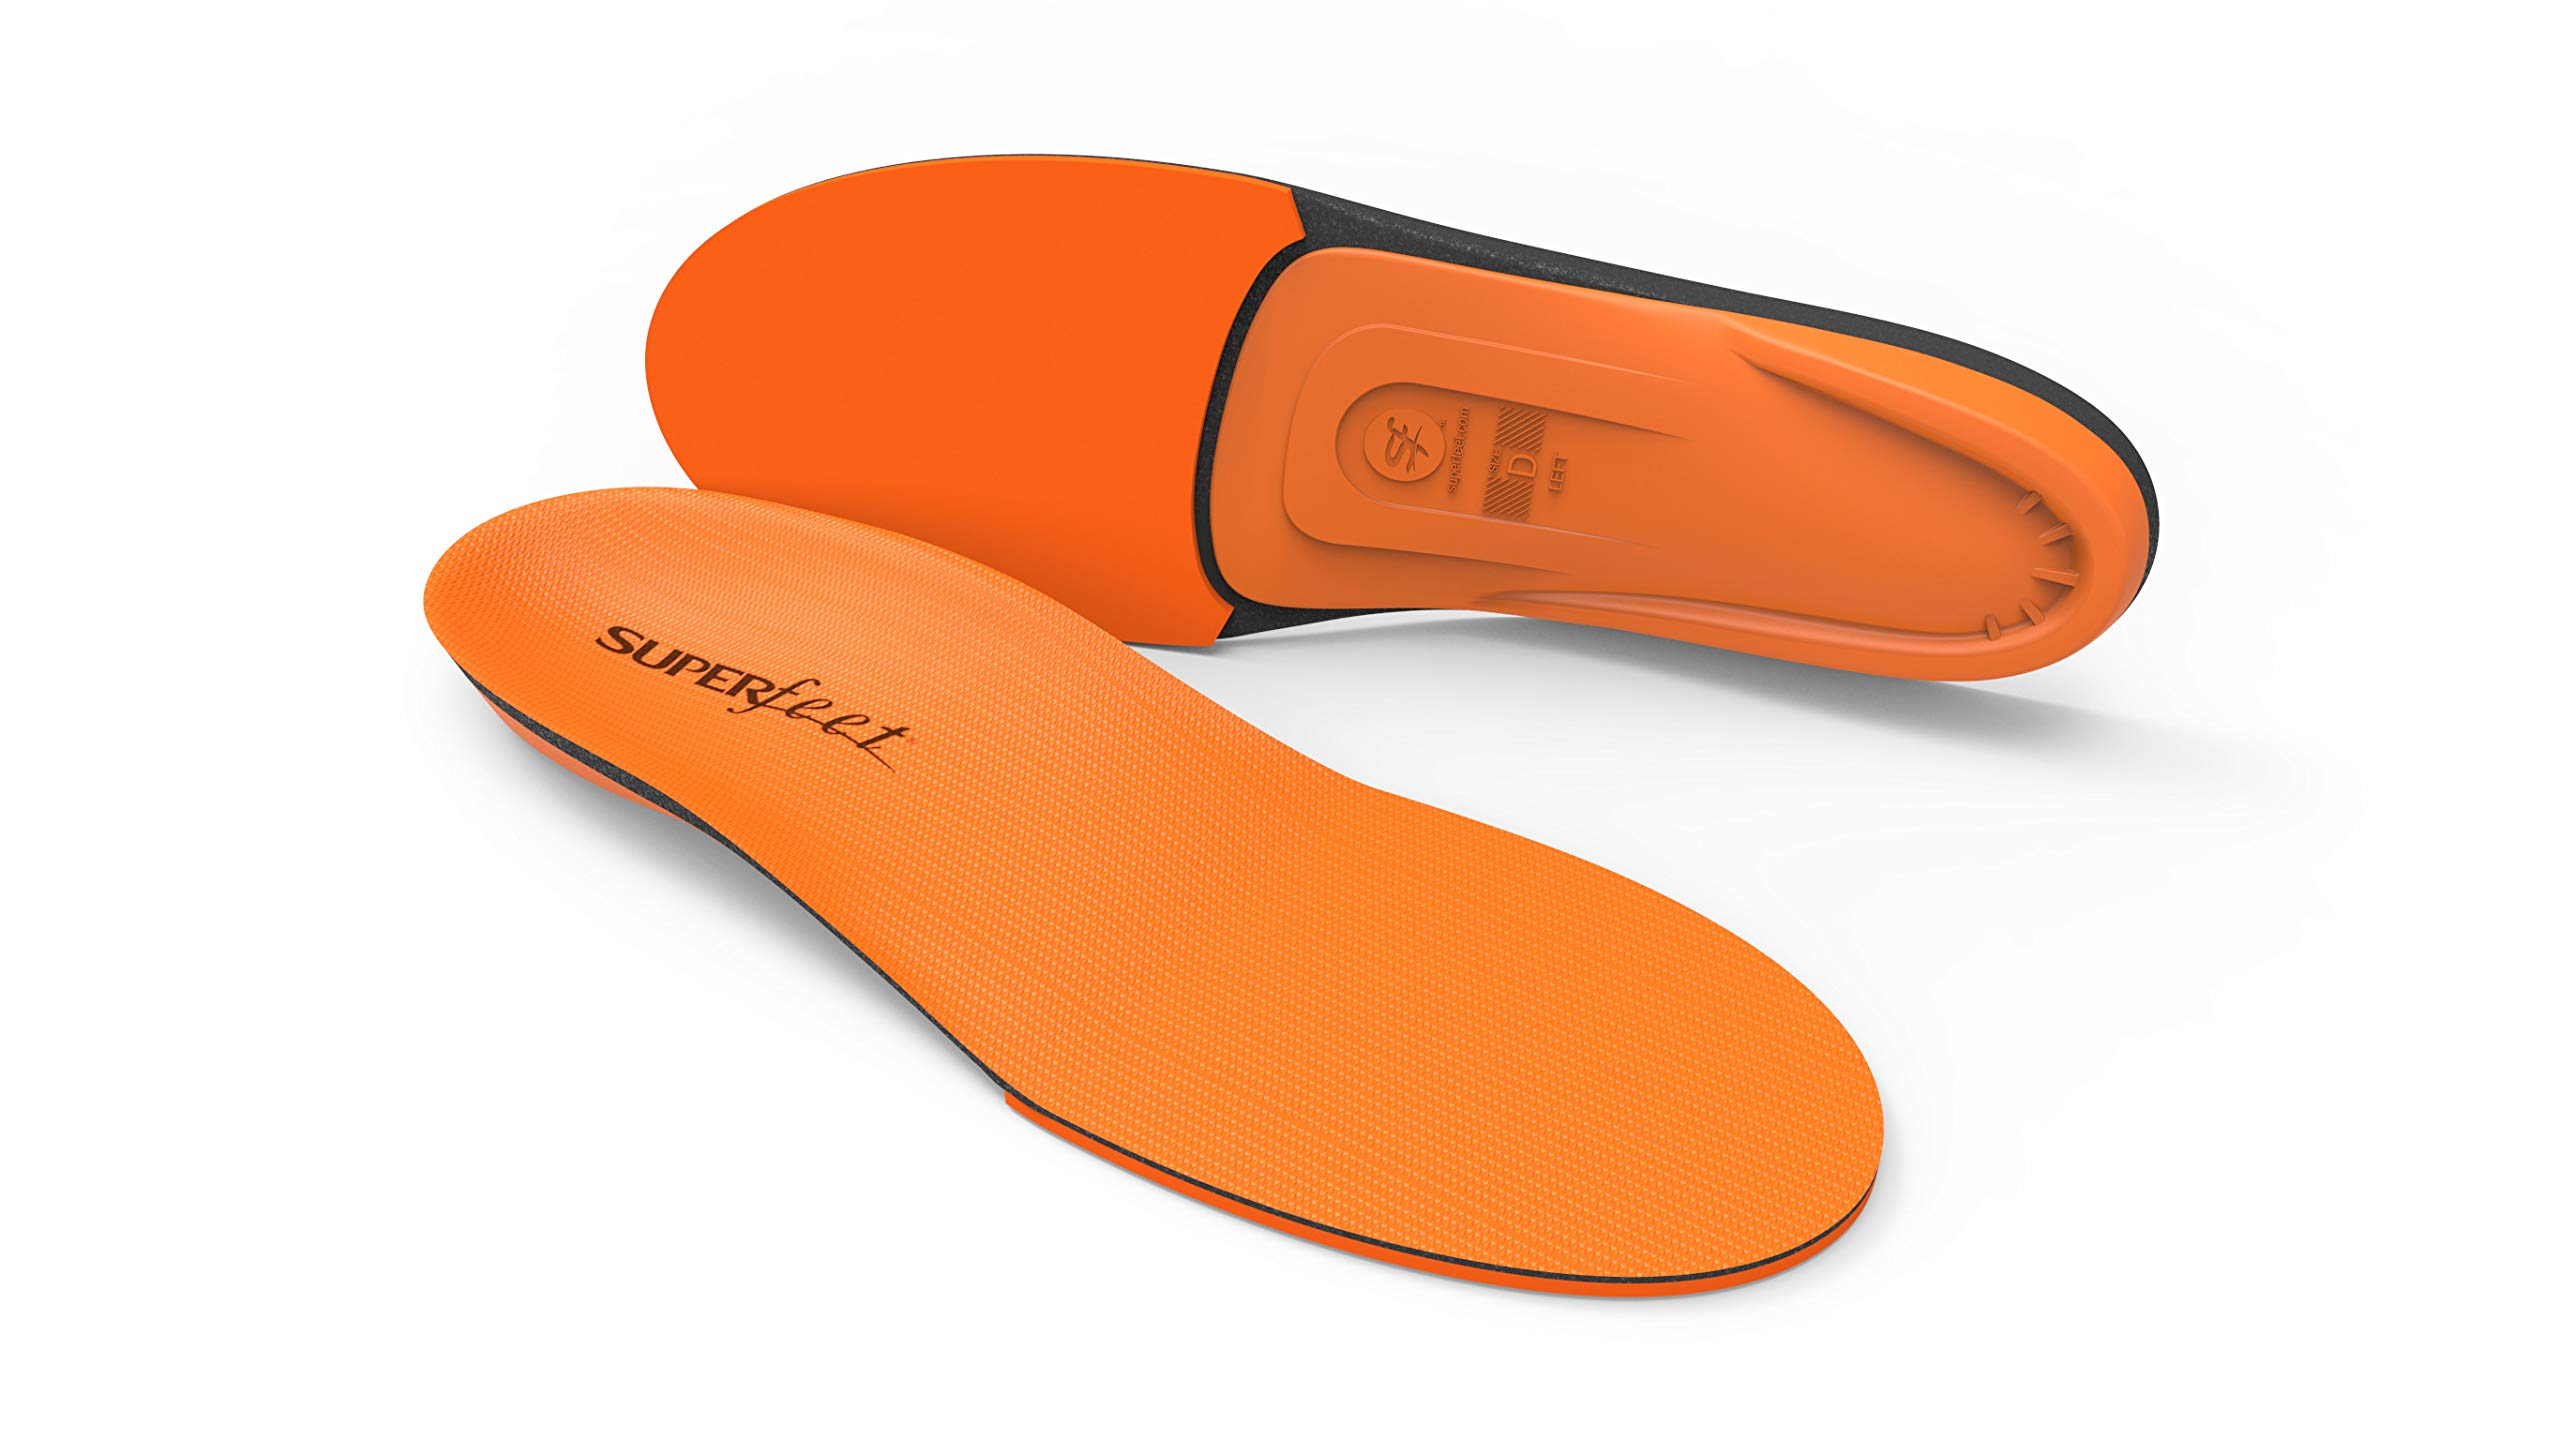 Superfeet ORANGE Insoles, High Arch Support and Forefoot Cushion Orthotic Insole for Anti-fatigue, Unisex, Orange, XXX-Large/H: 16.5+ Wmns/15.5 - 17 Mens